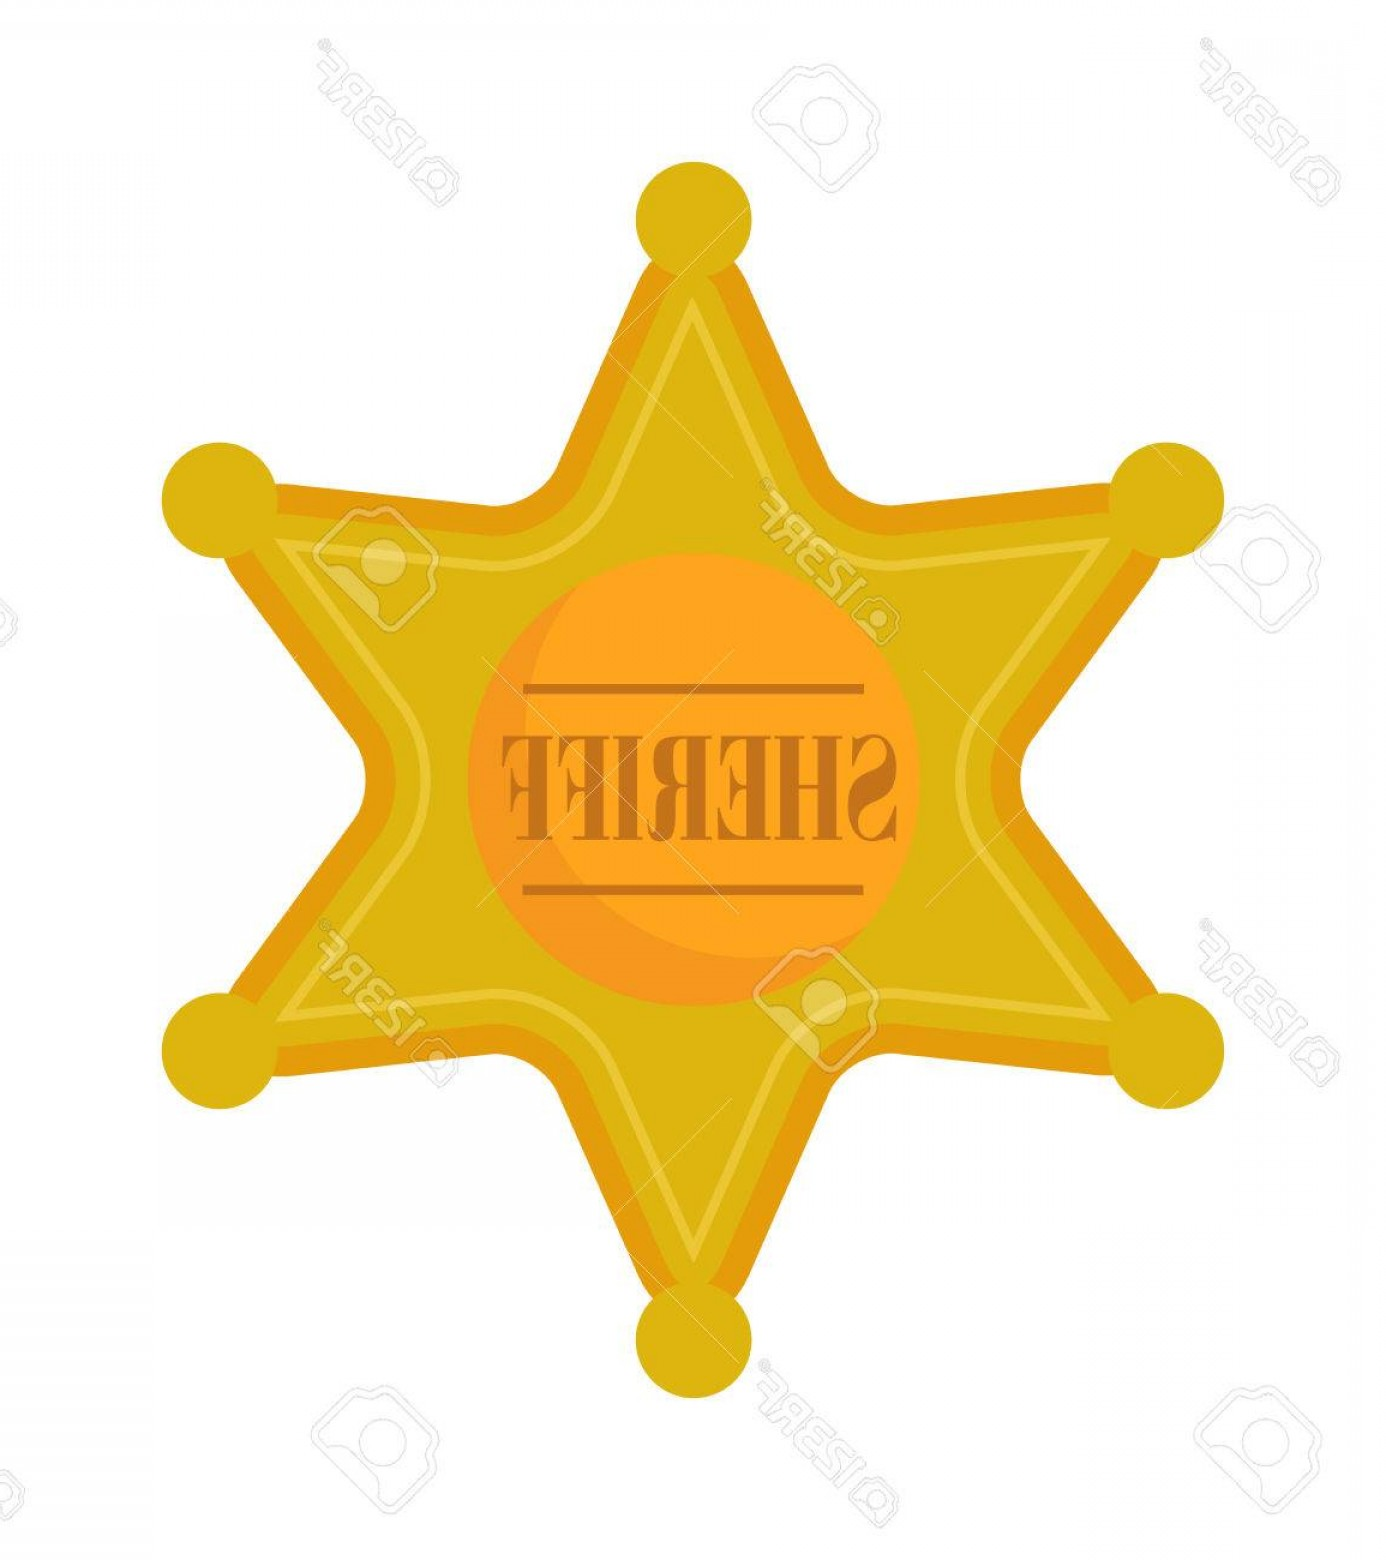 Star Badge Vector: Photostock Vector Sheriff Gold Star Badge And Justice Western Sheriff Star Old American Gold Retro Badge Vector Golden